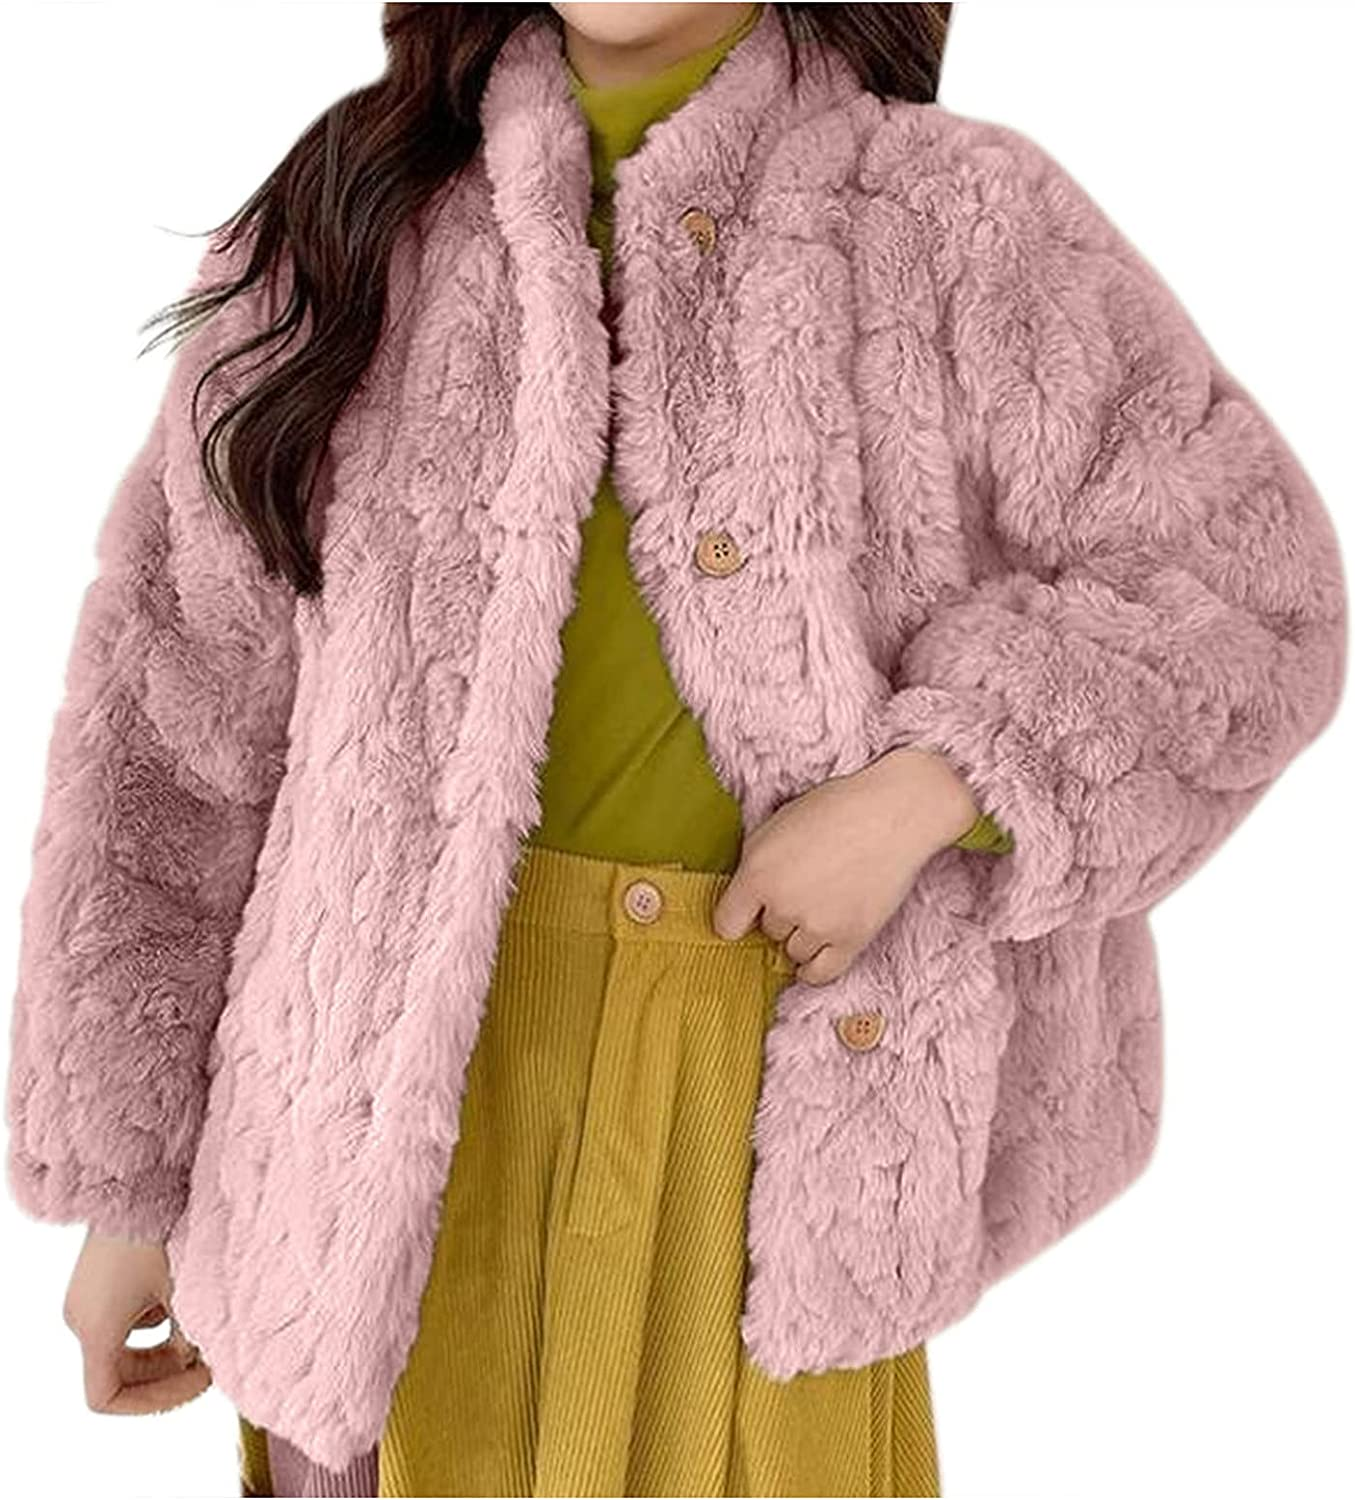 Women Casual Fuzzy Sherpa Coats Warm Fluffy Jacket with Fleece Lined Oversized Top Button Faux Jacket Outwear with Pockets